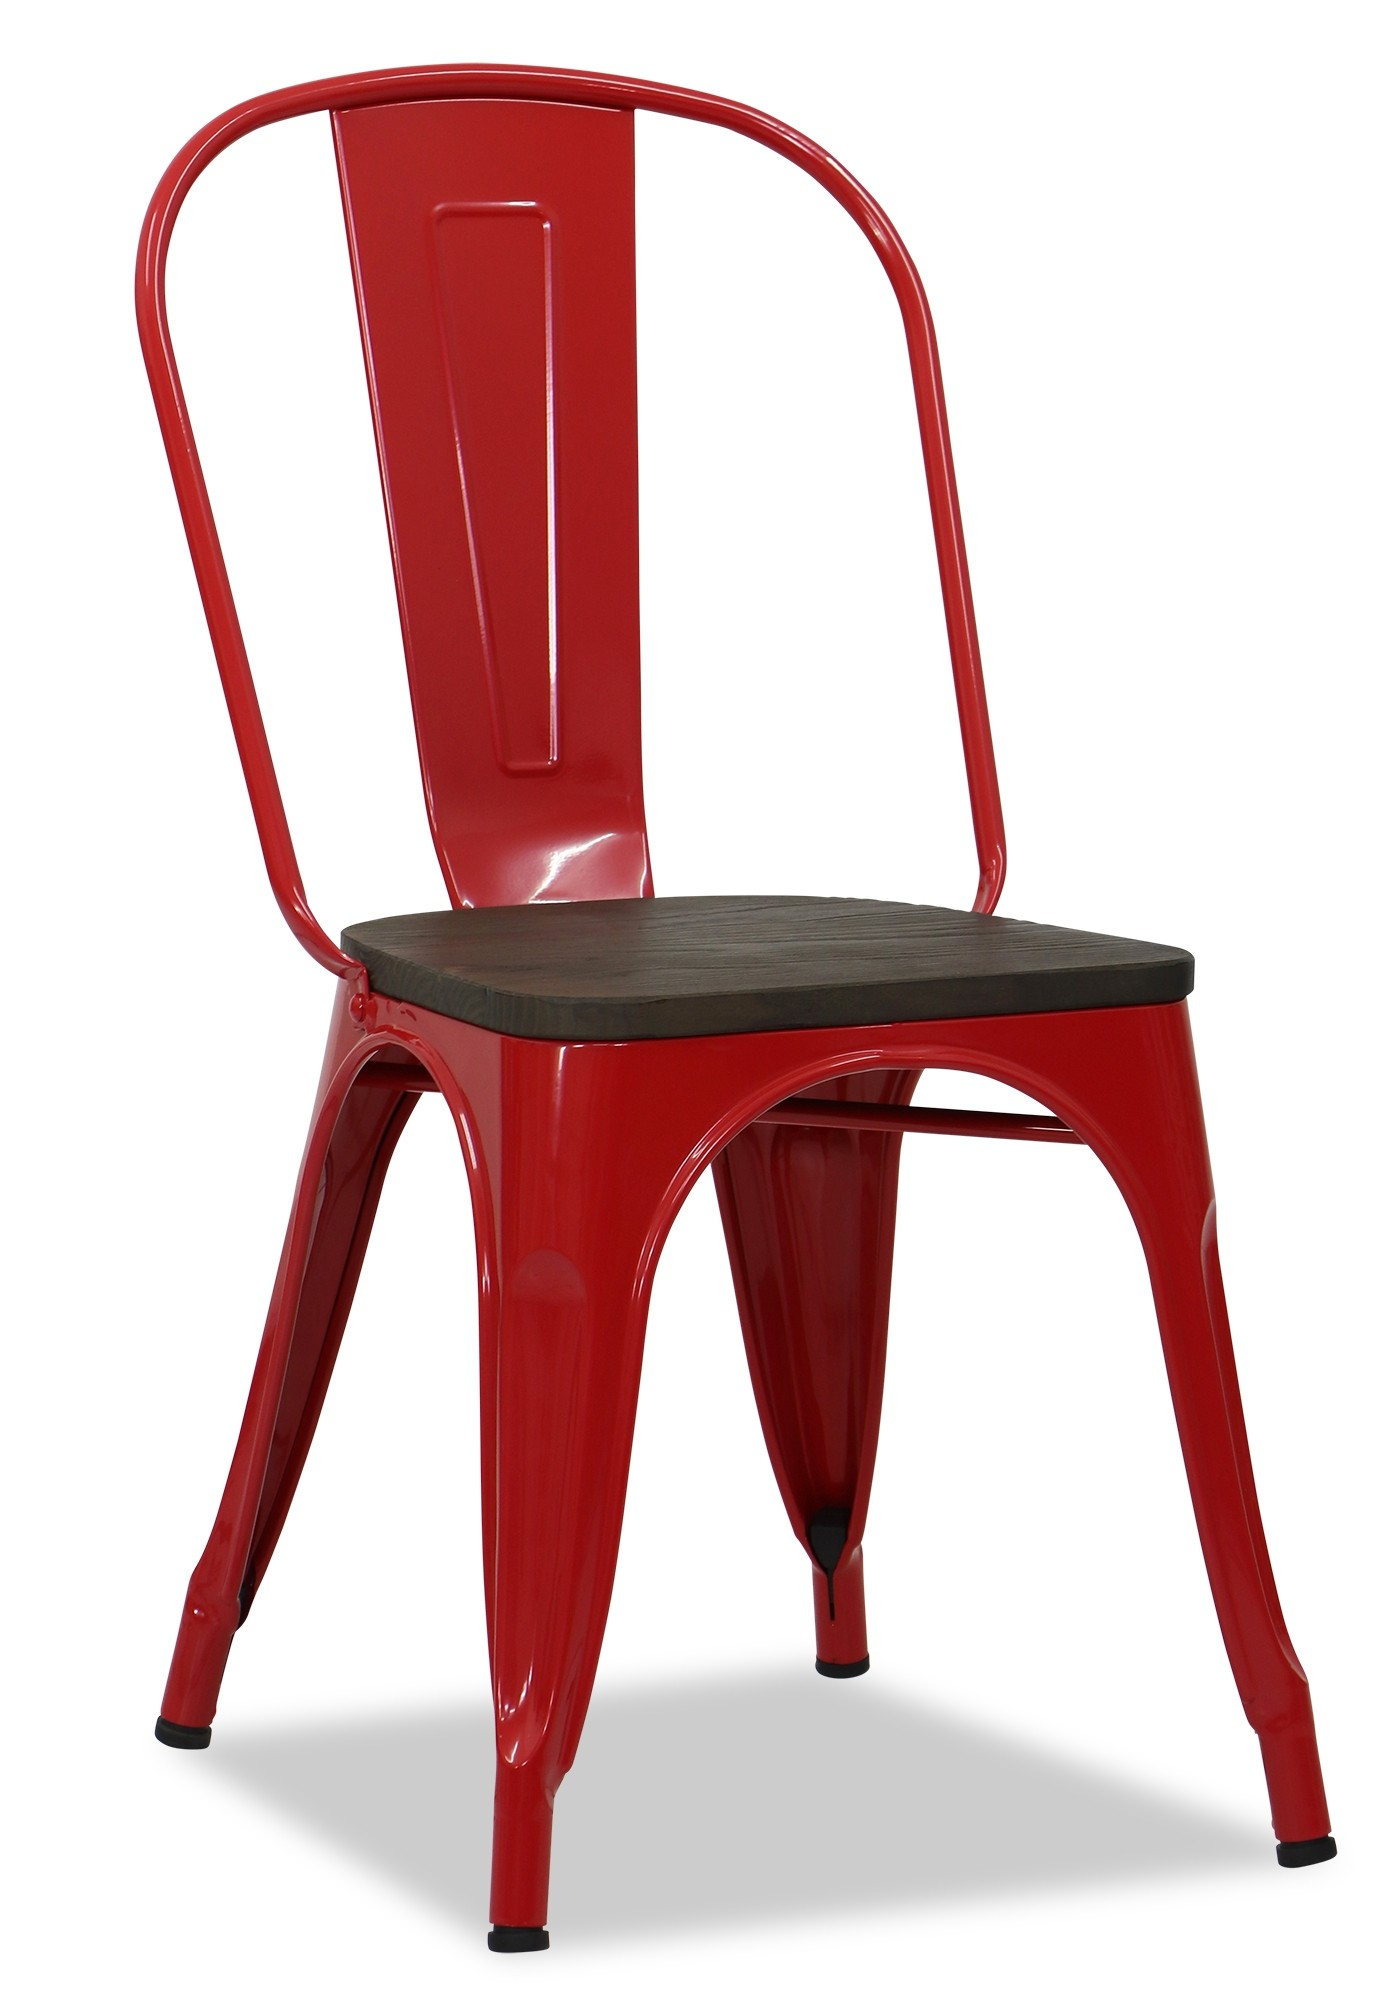 Metal Chair With Wood Seat Retro Metal Chair With Wooden Seat In Red Furniture